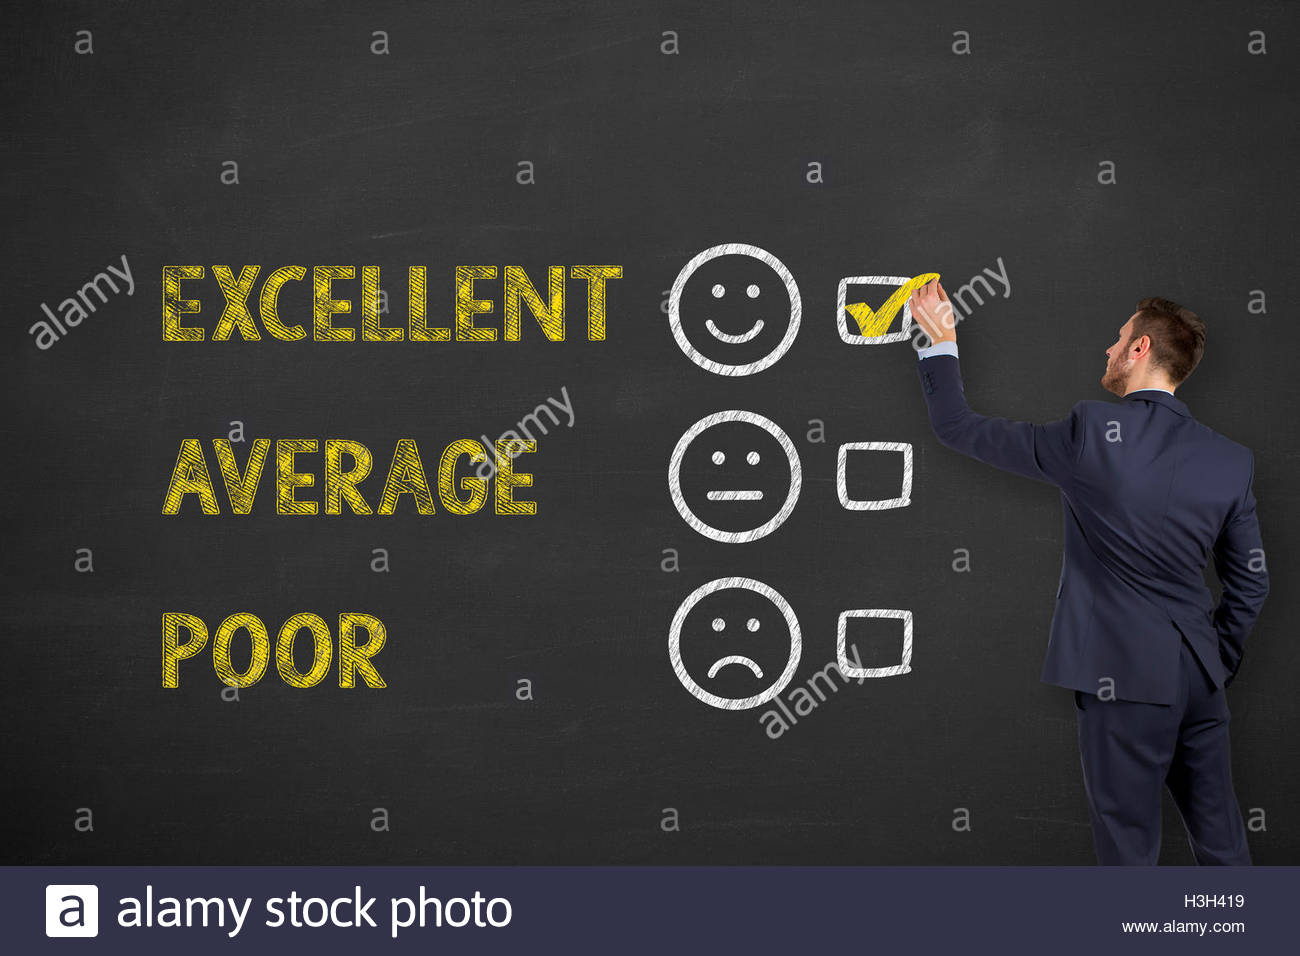 Excellent Customer Service Evaluation Form Drawing on Chalkboard - Stock Image